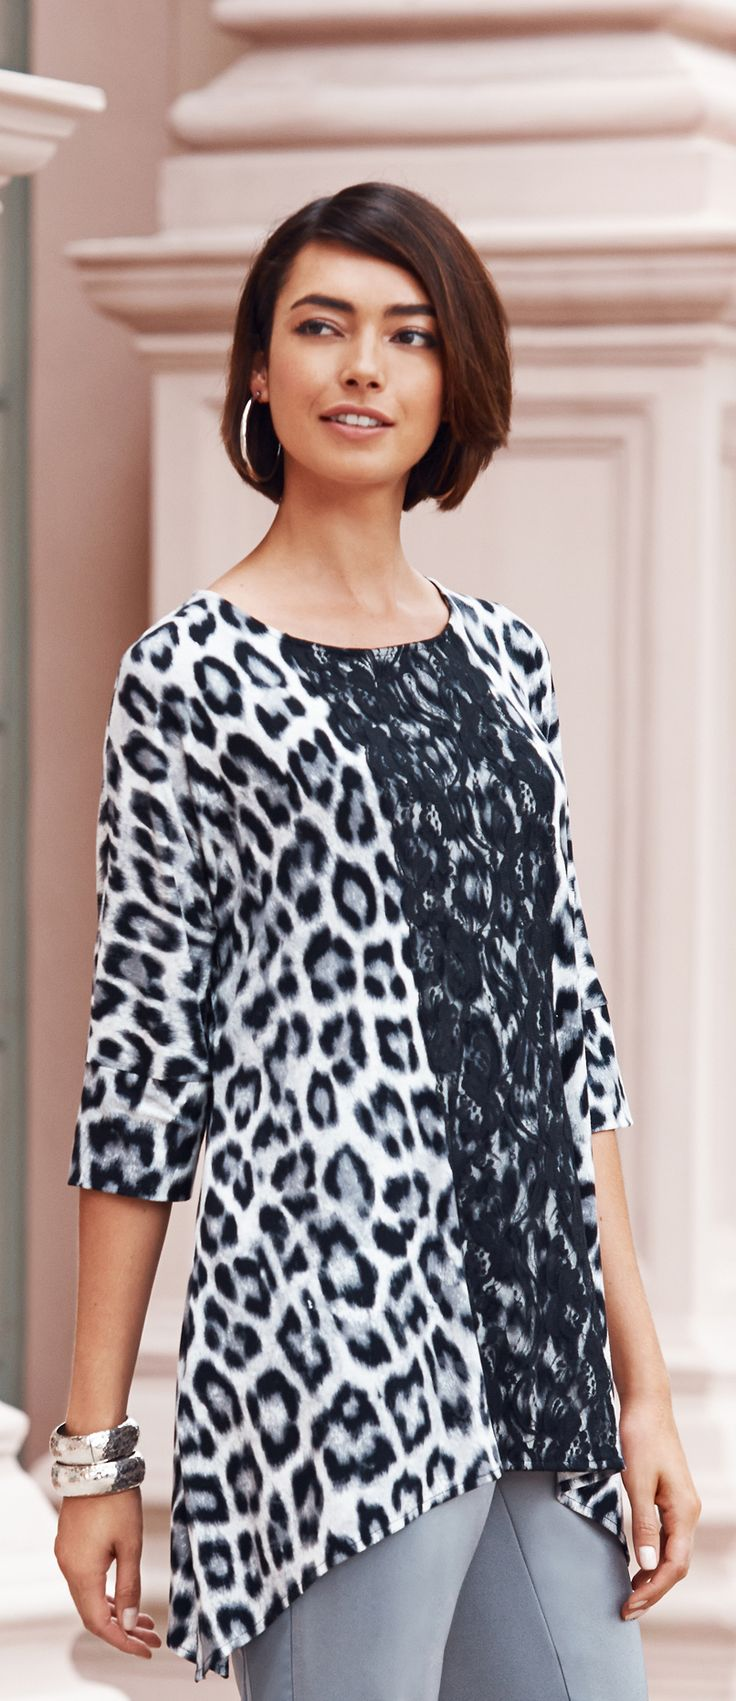 Chico's Black Label Animal Lace Print Knit Top